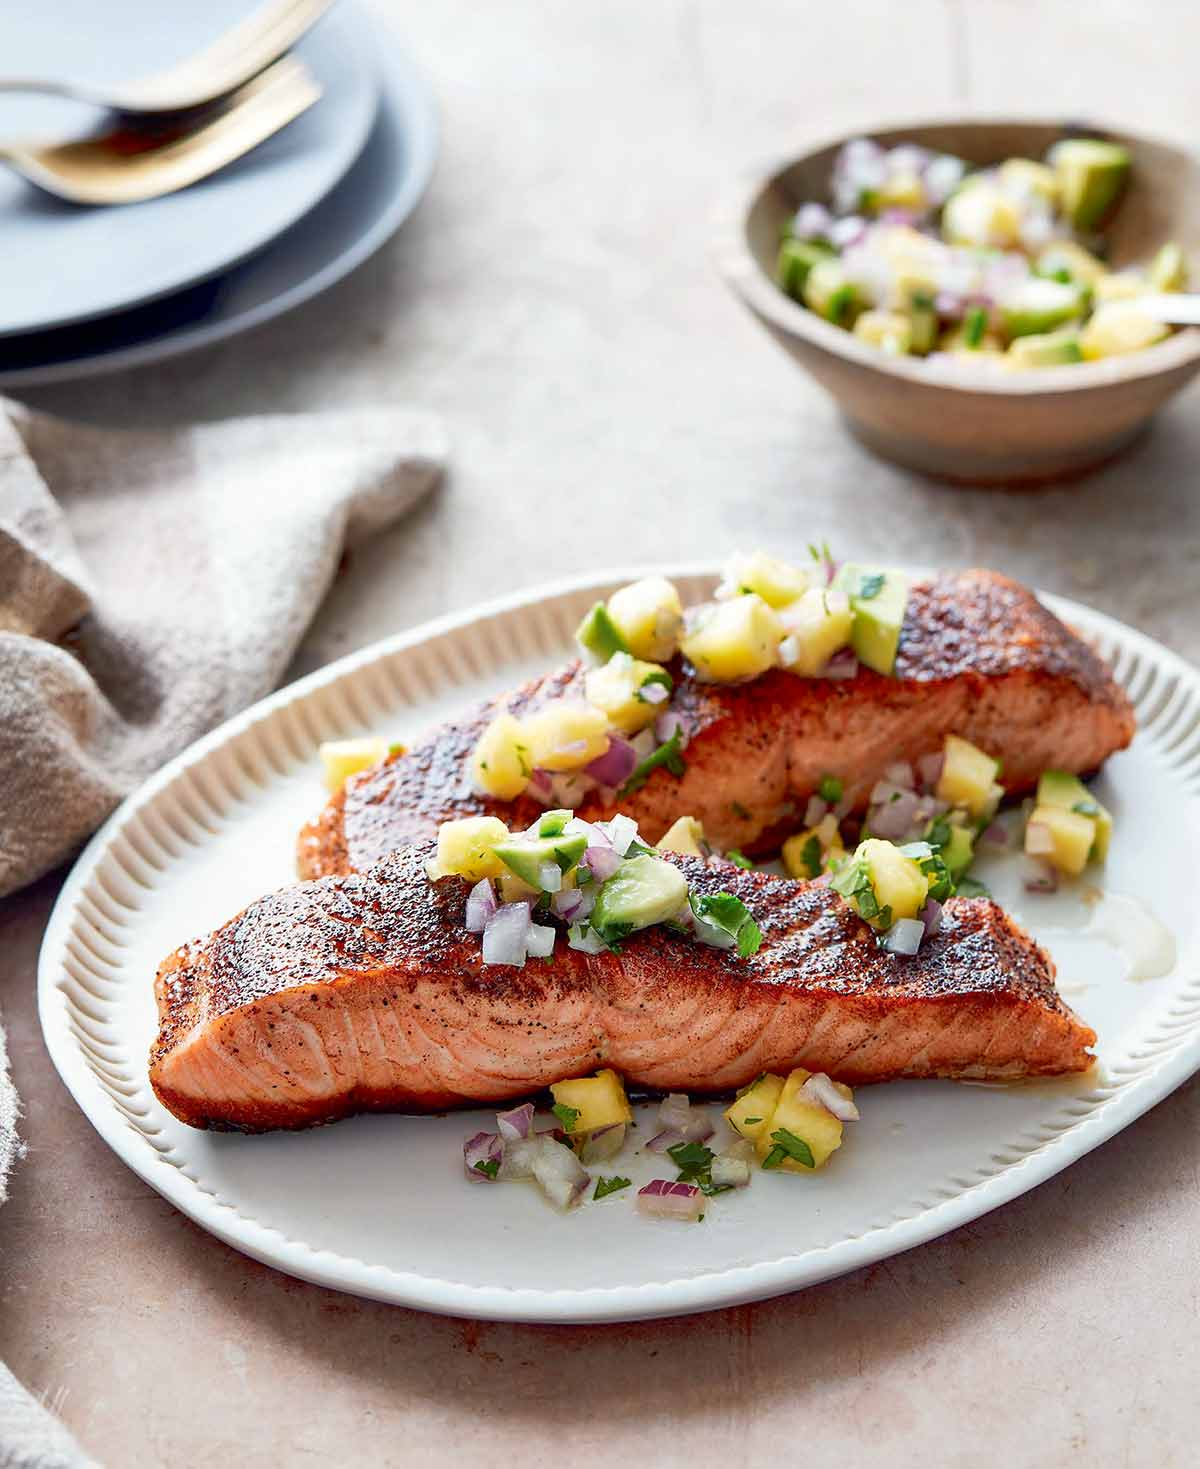 Two pieces of blackened salmon topped with pineapple salsa on an oval serving plate.